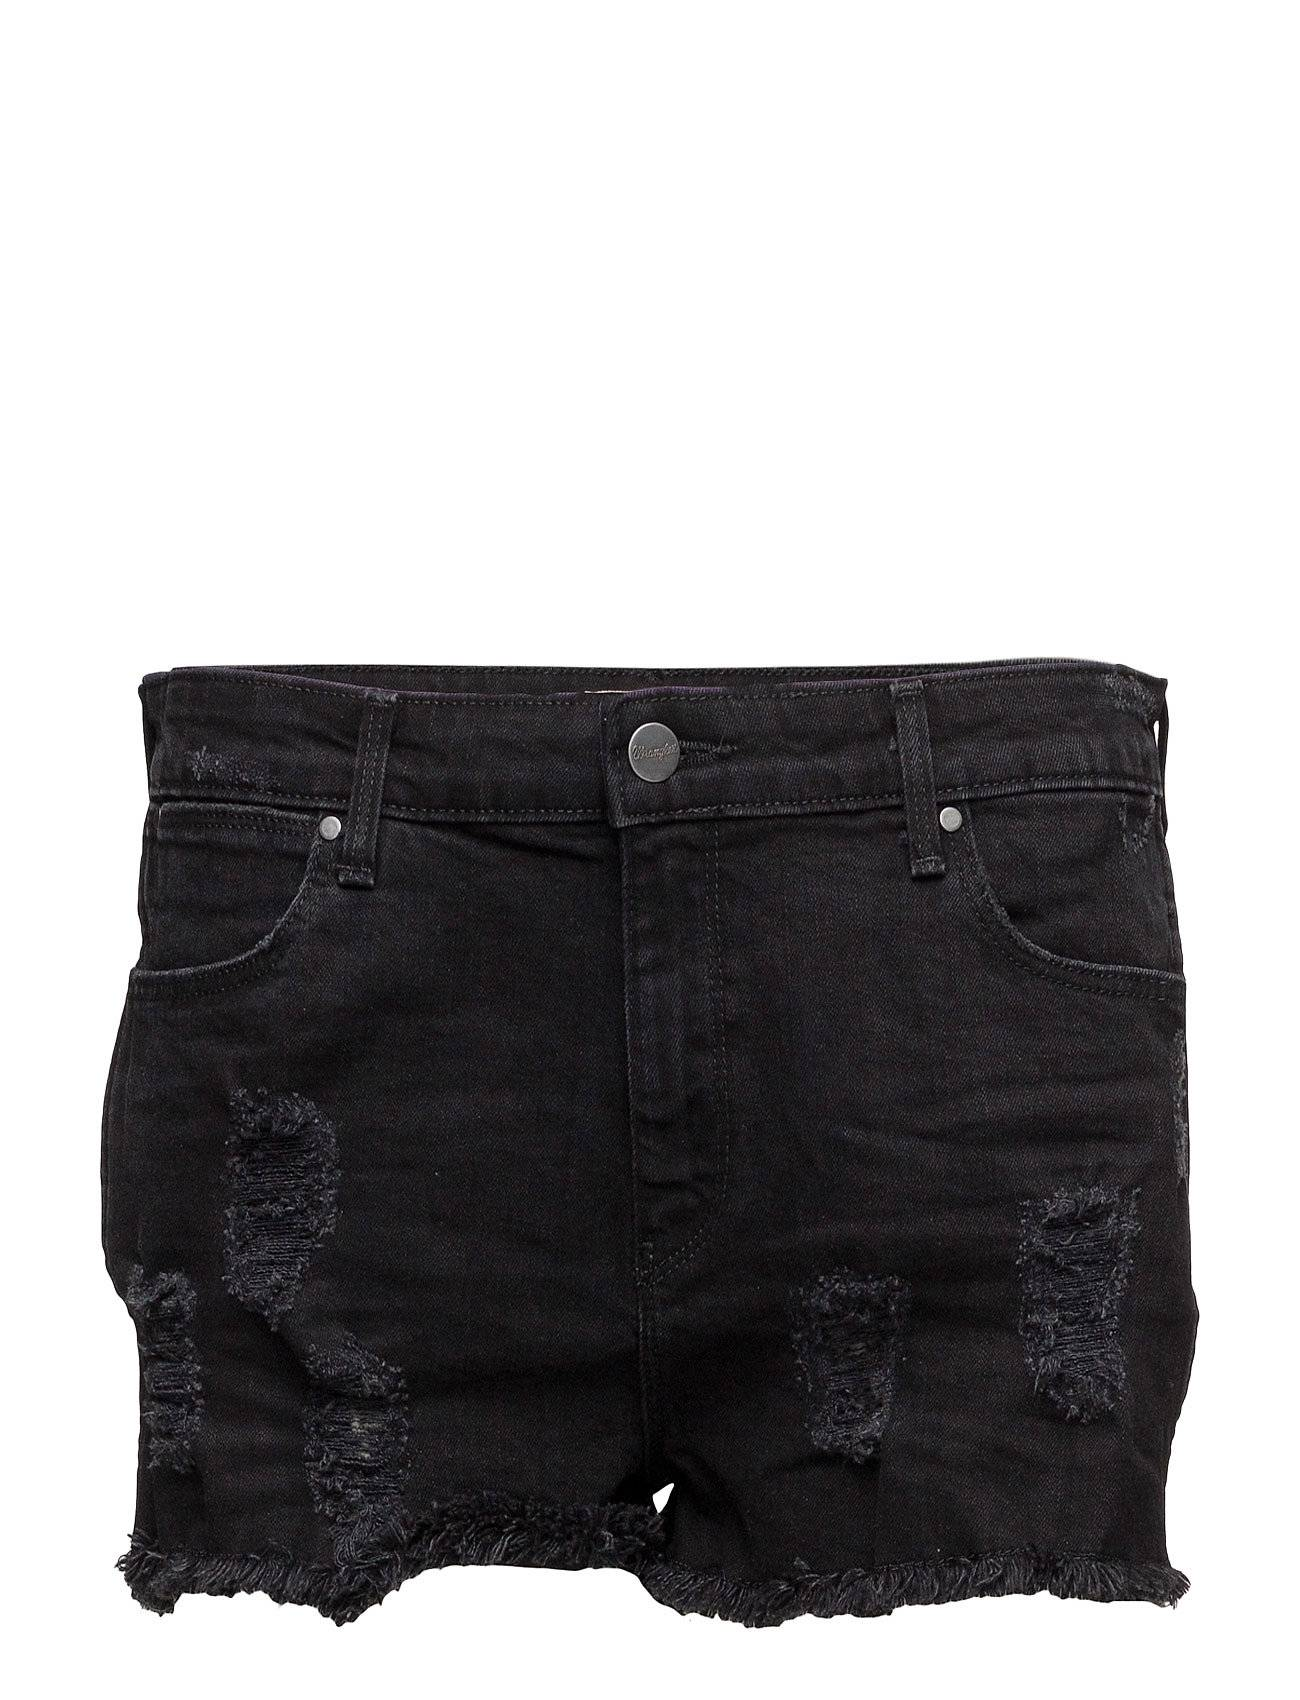 Wrangler Boyfriend Short Damaged Black